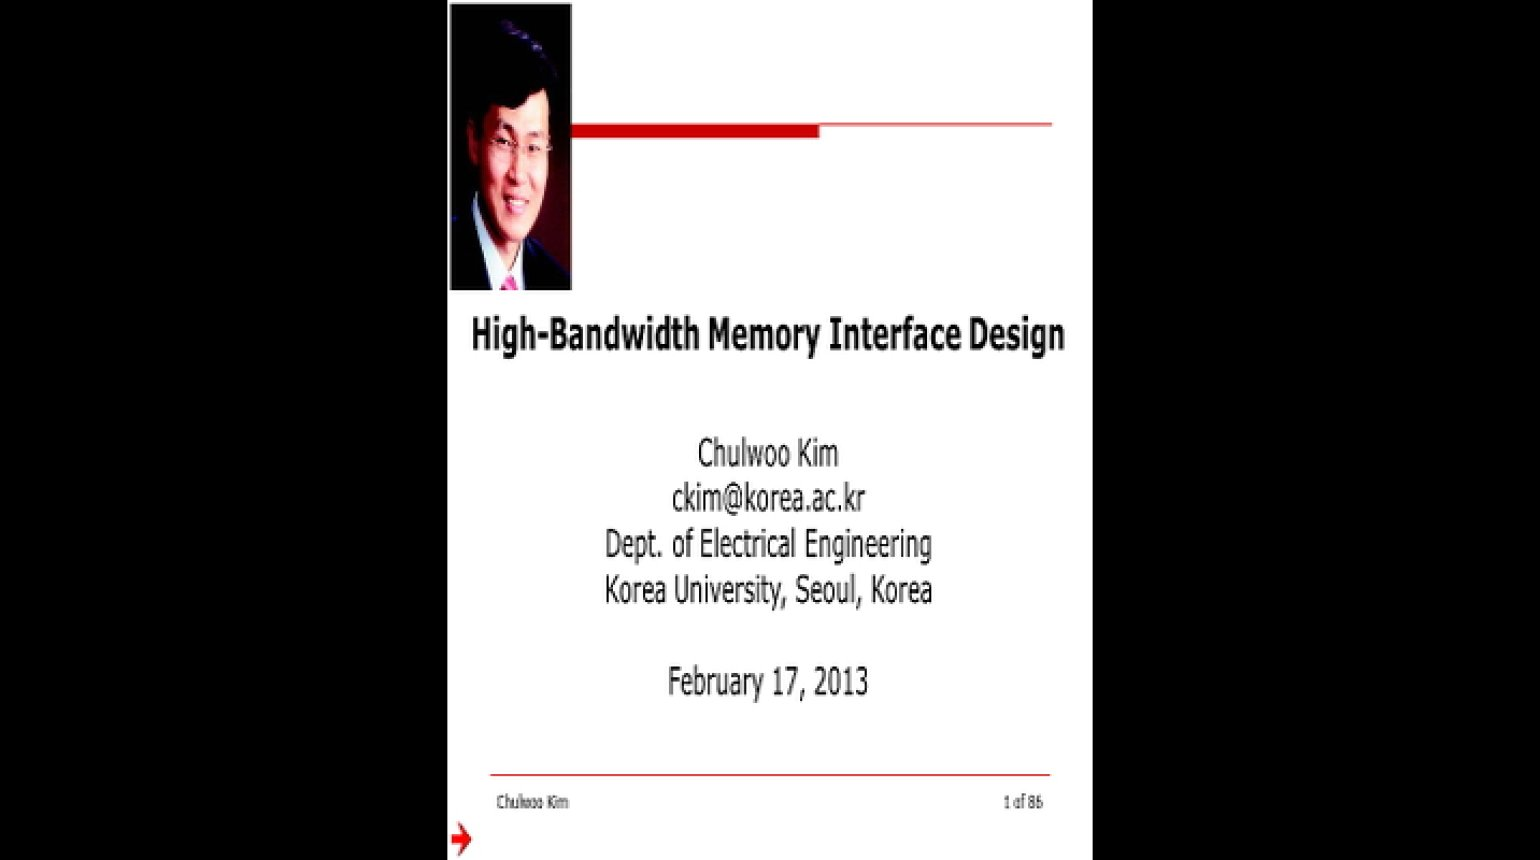 High Bandwidth Memory Interface Design Video